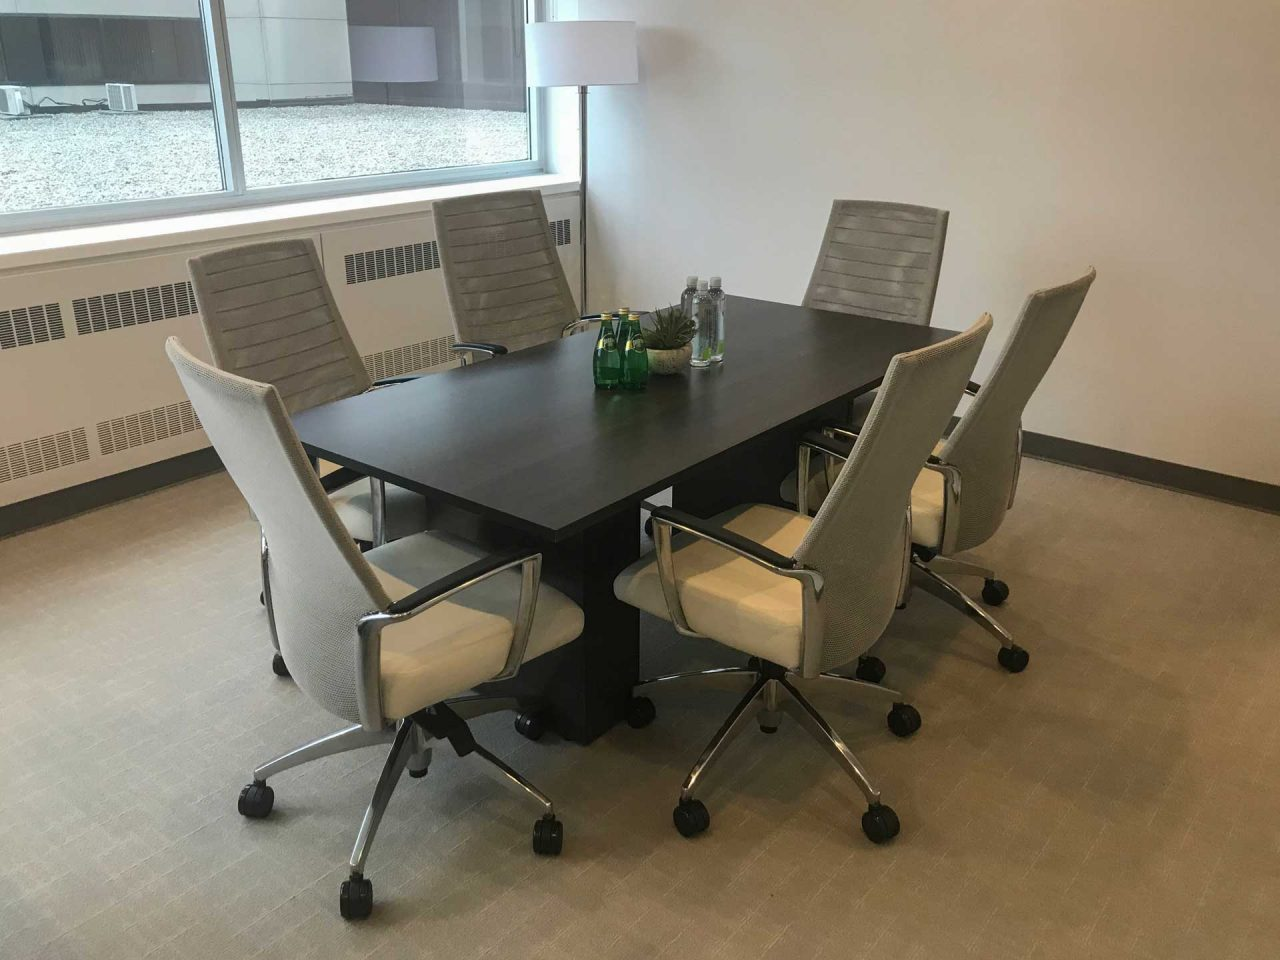 Square Meeting Table with Cube Base, Conference Chairs